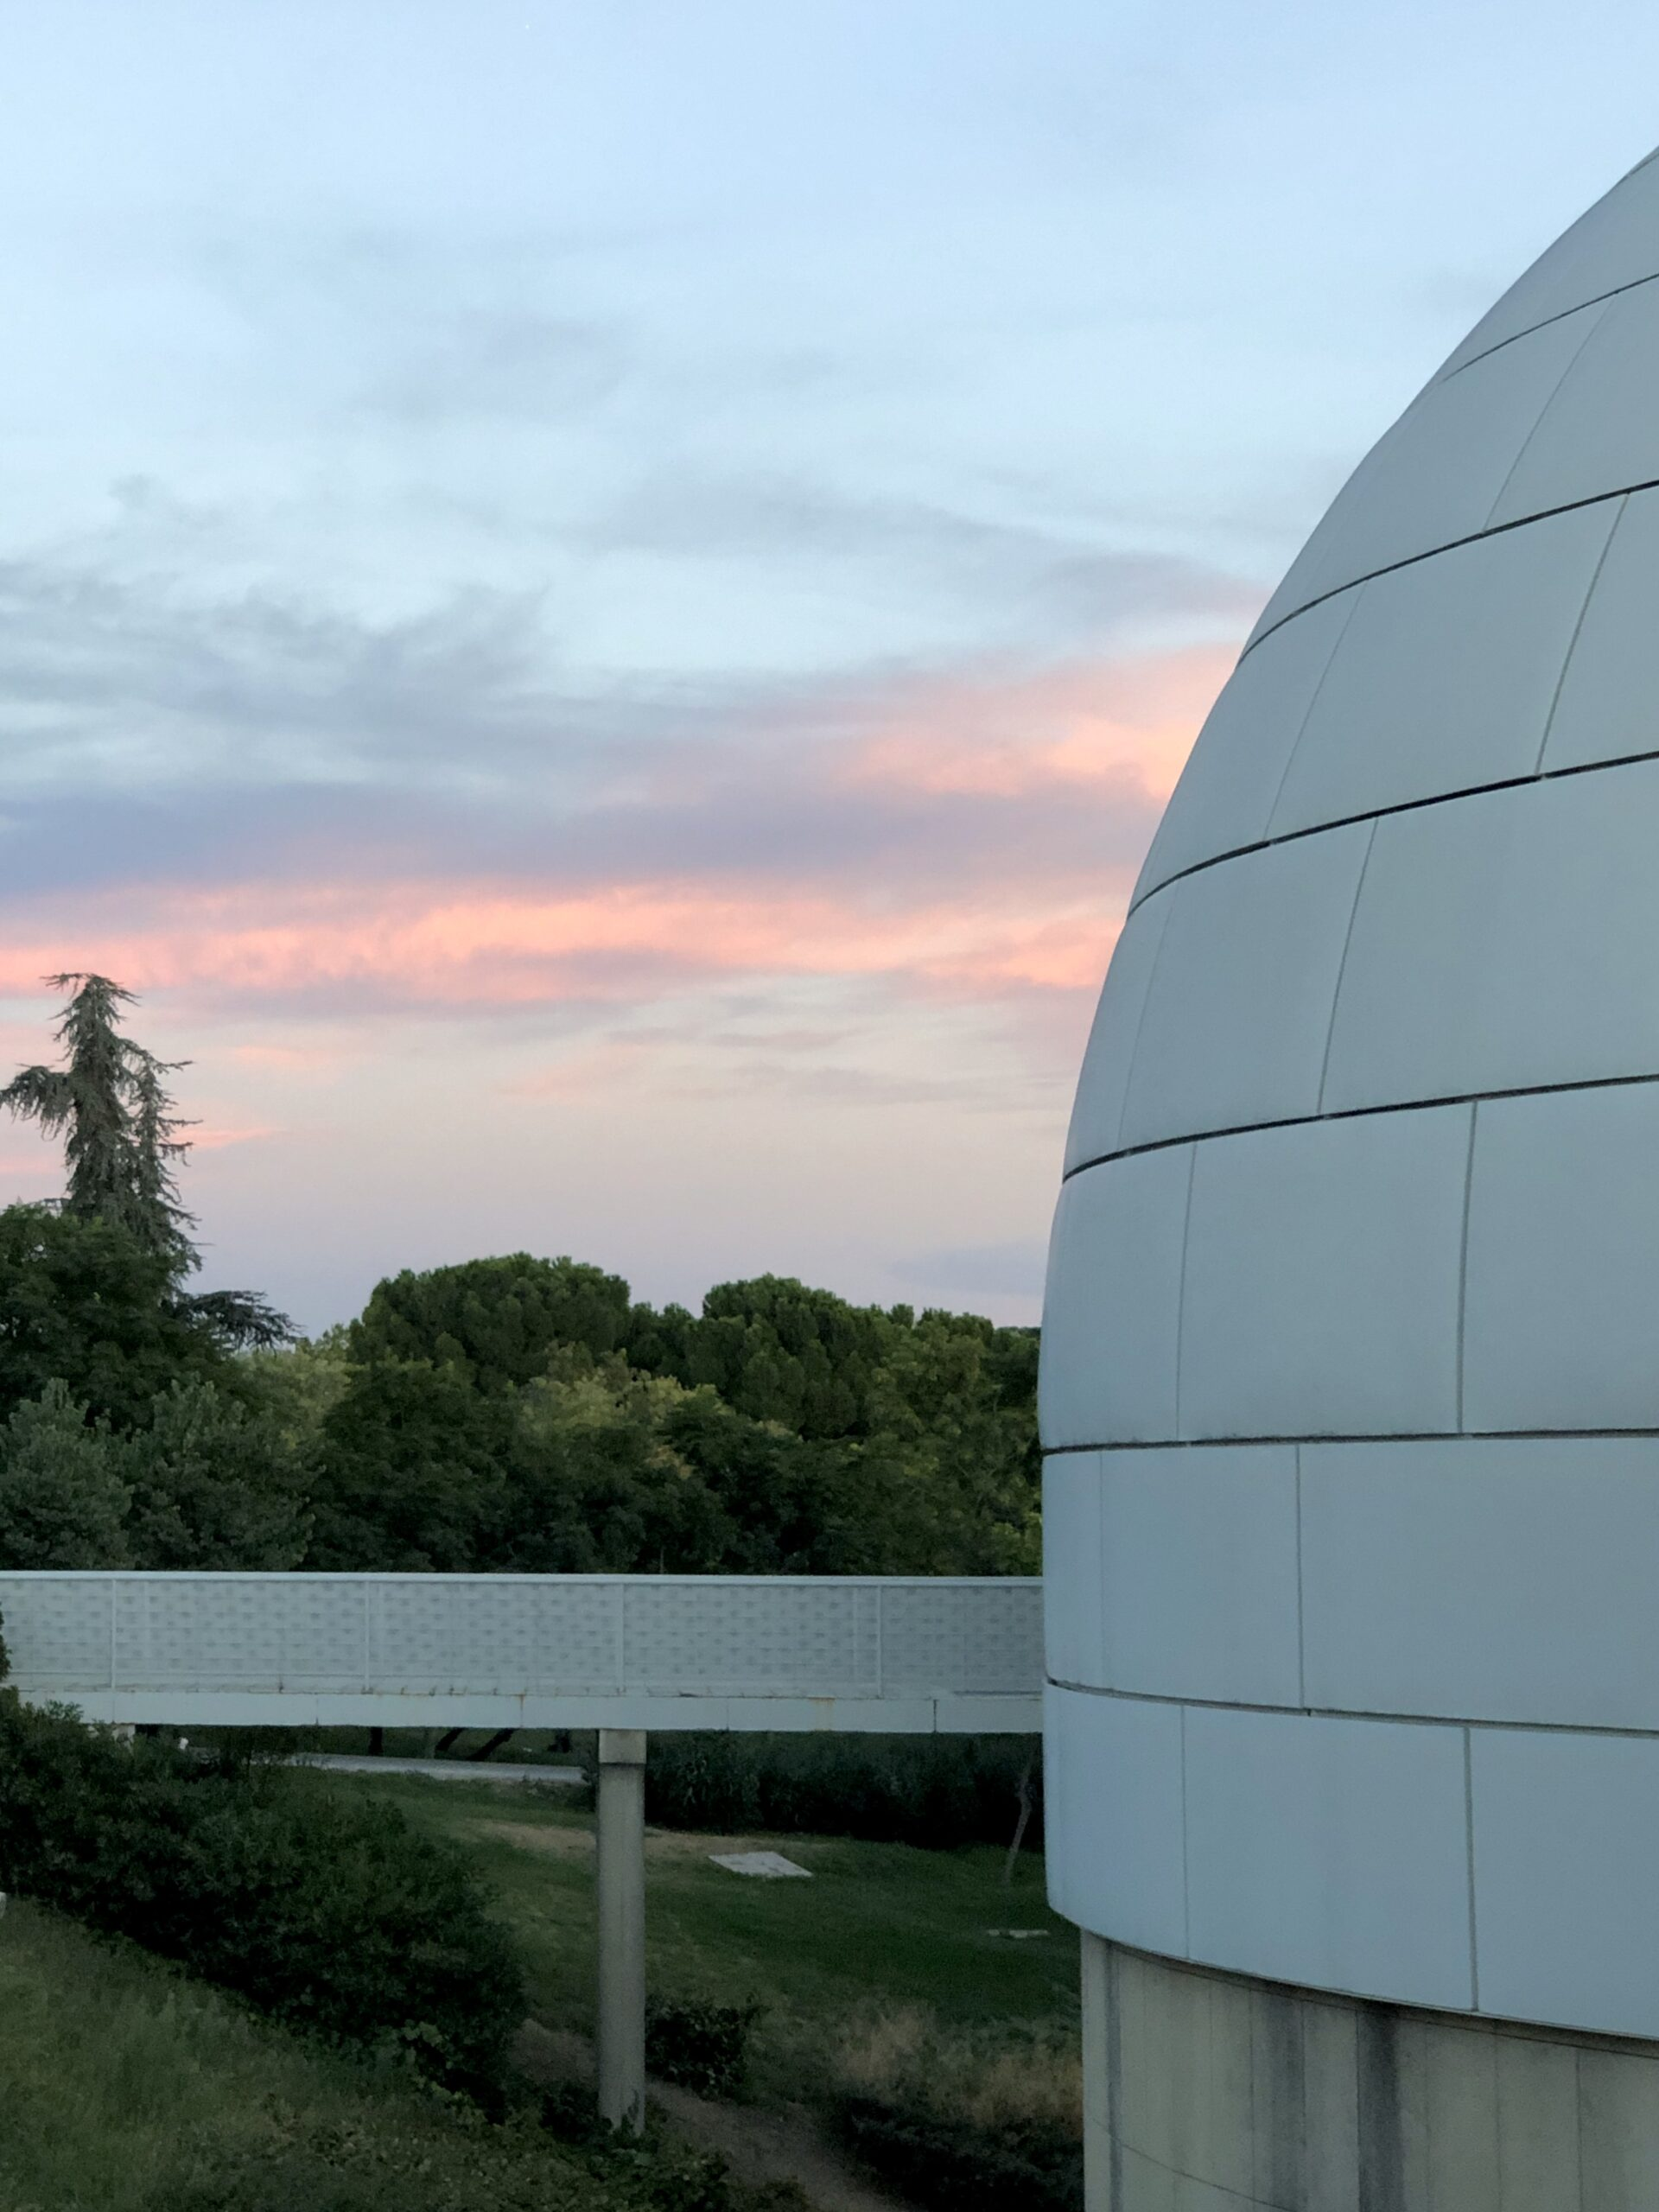 A pink sunset behind the dome of the planetarium in Madrid.